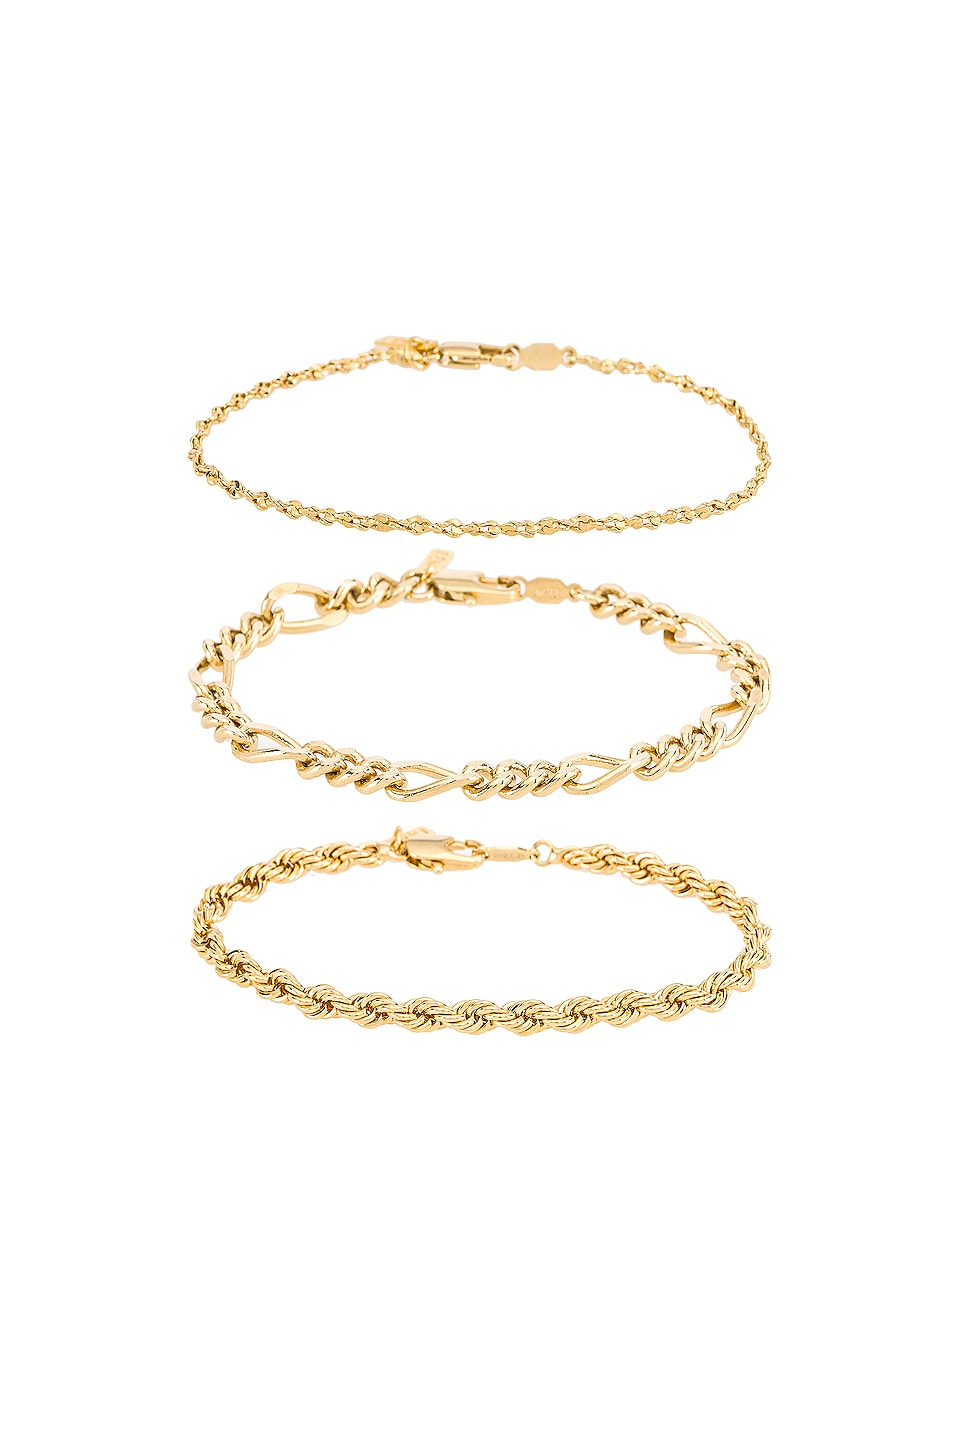 Natalie B Jewelry Triple Crown Bracelet Set in Gold